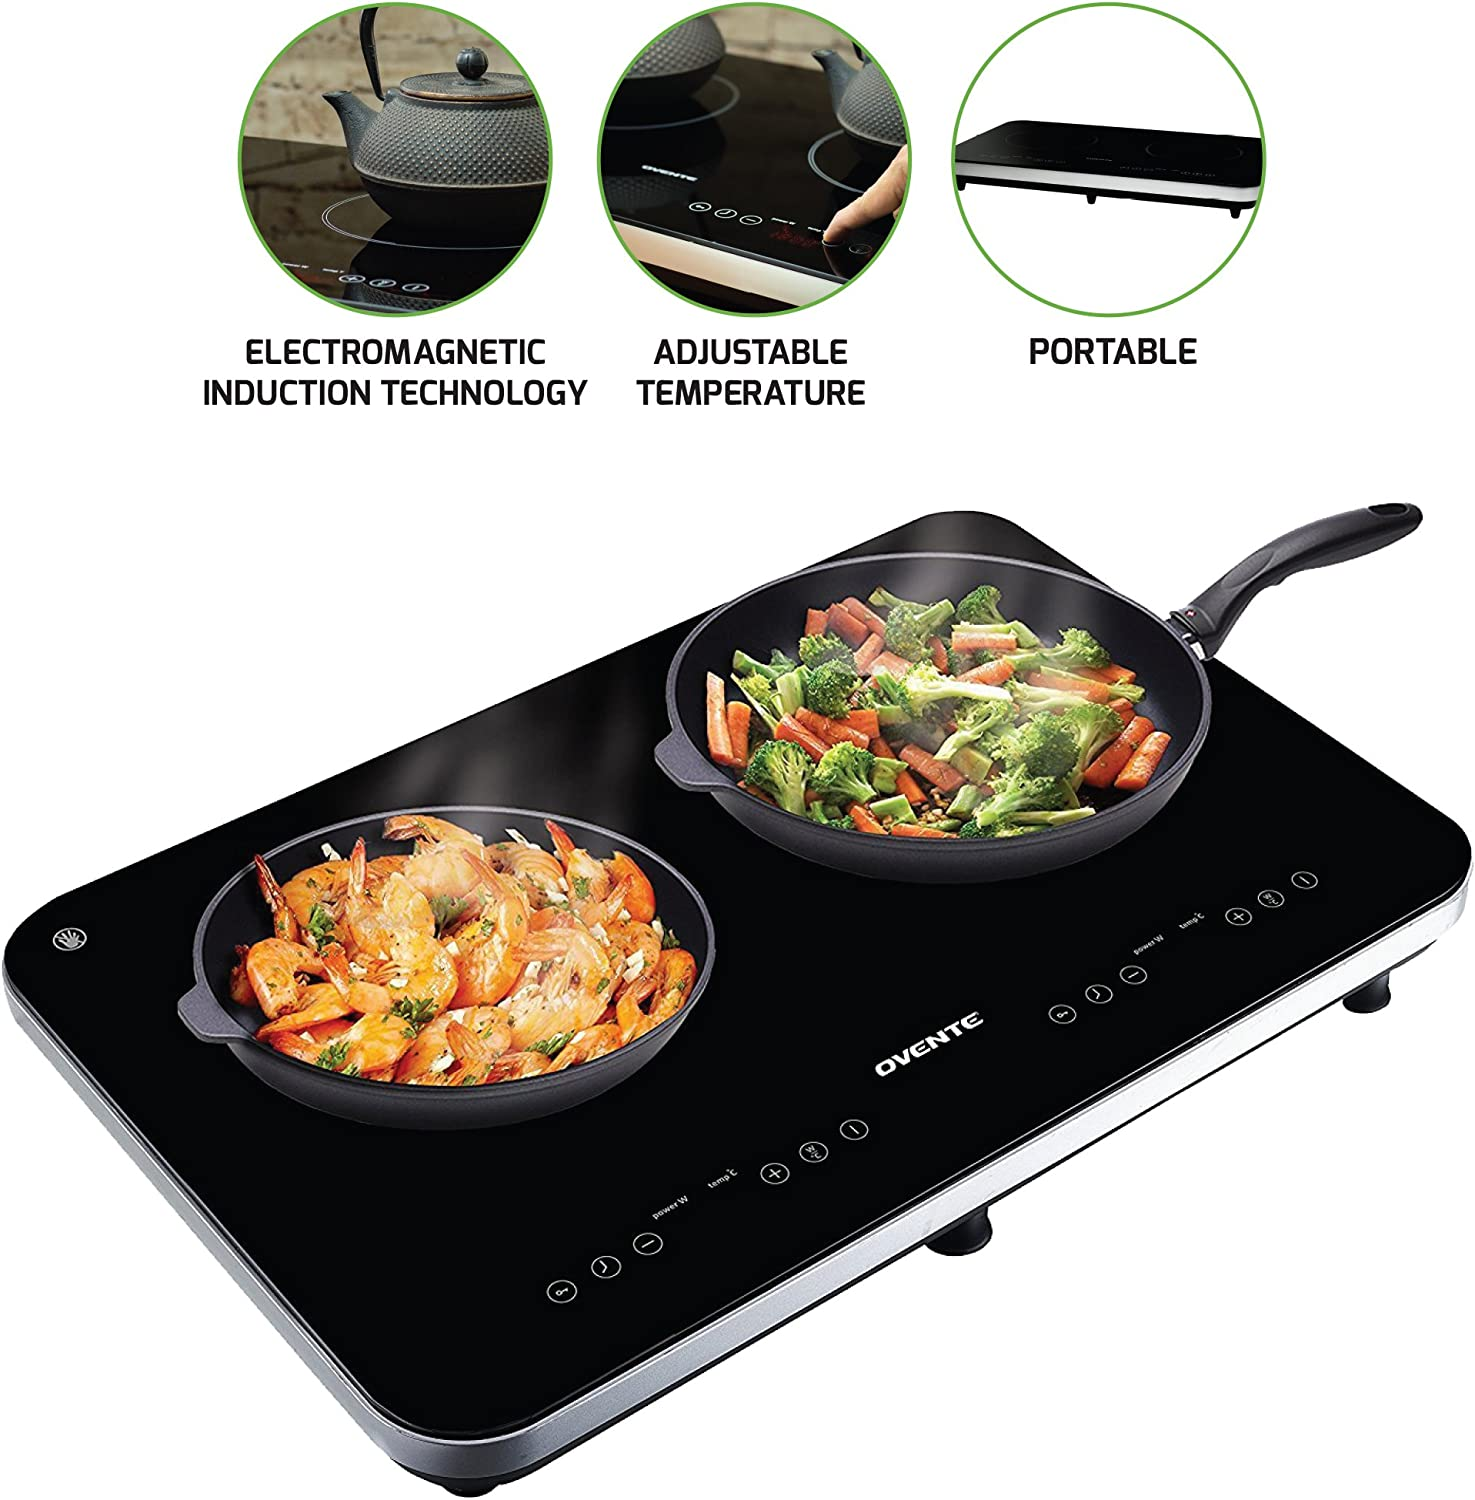 Ovente Induction Countertop Burner, Cool-Touch Ceramic Glass Cooktop with Temperature Control, Timer, 1800-Watts, Digital LED Touchscreen Display, Indoor Outdoor Portable Double Hot Plate BG62B